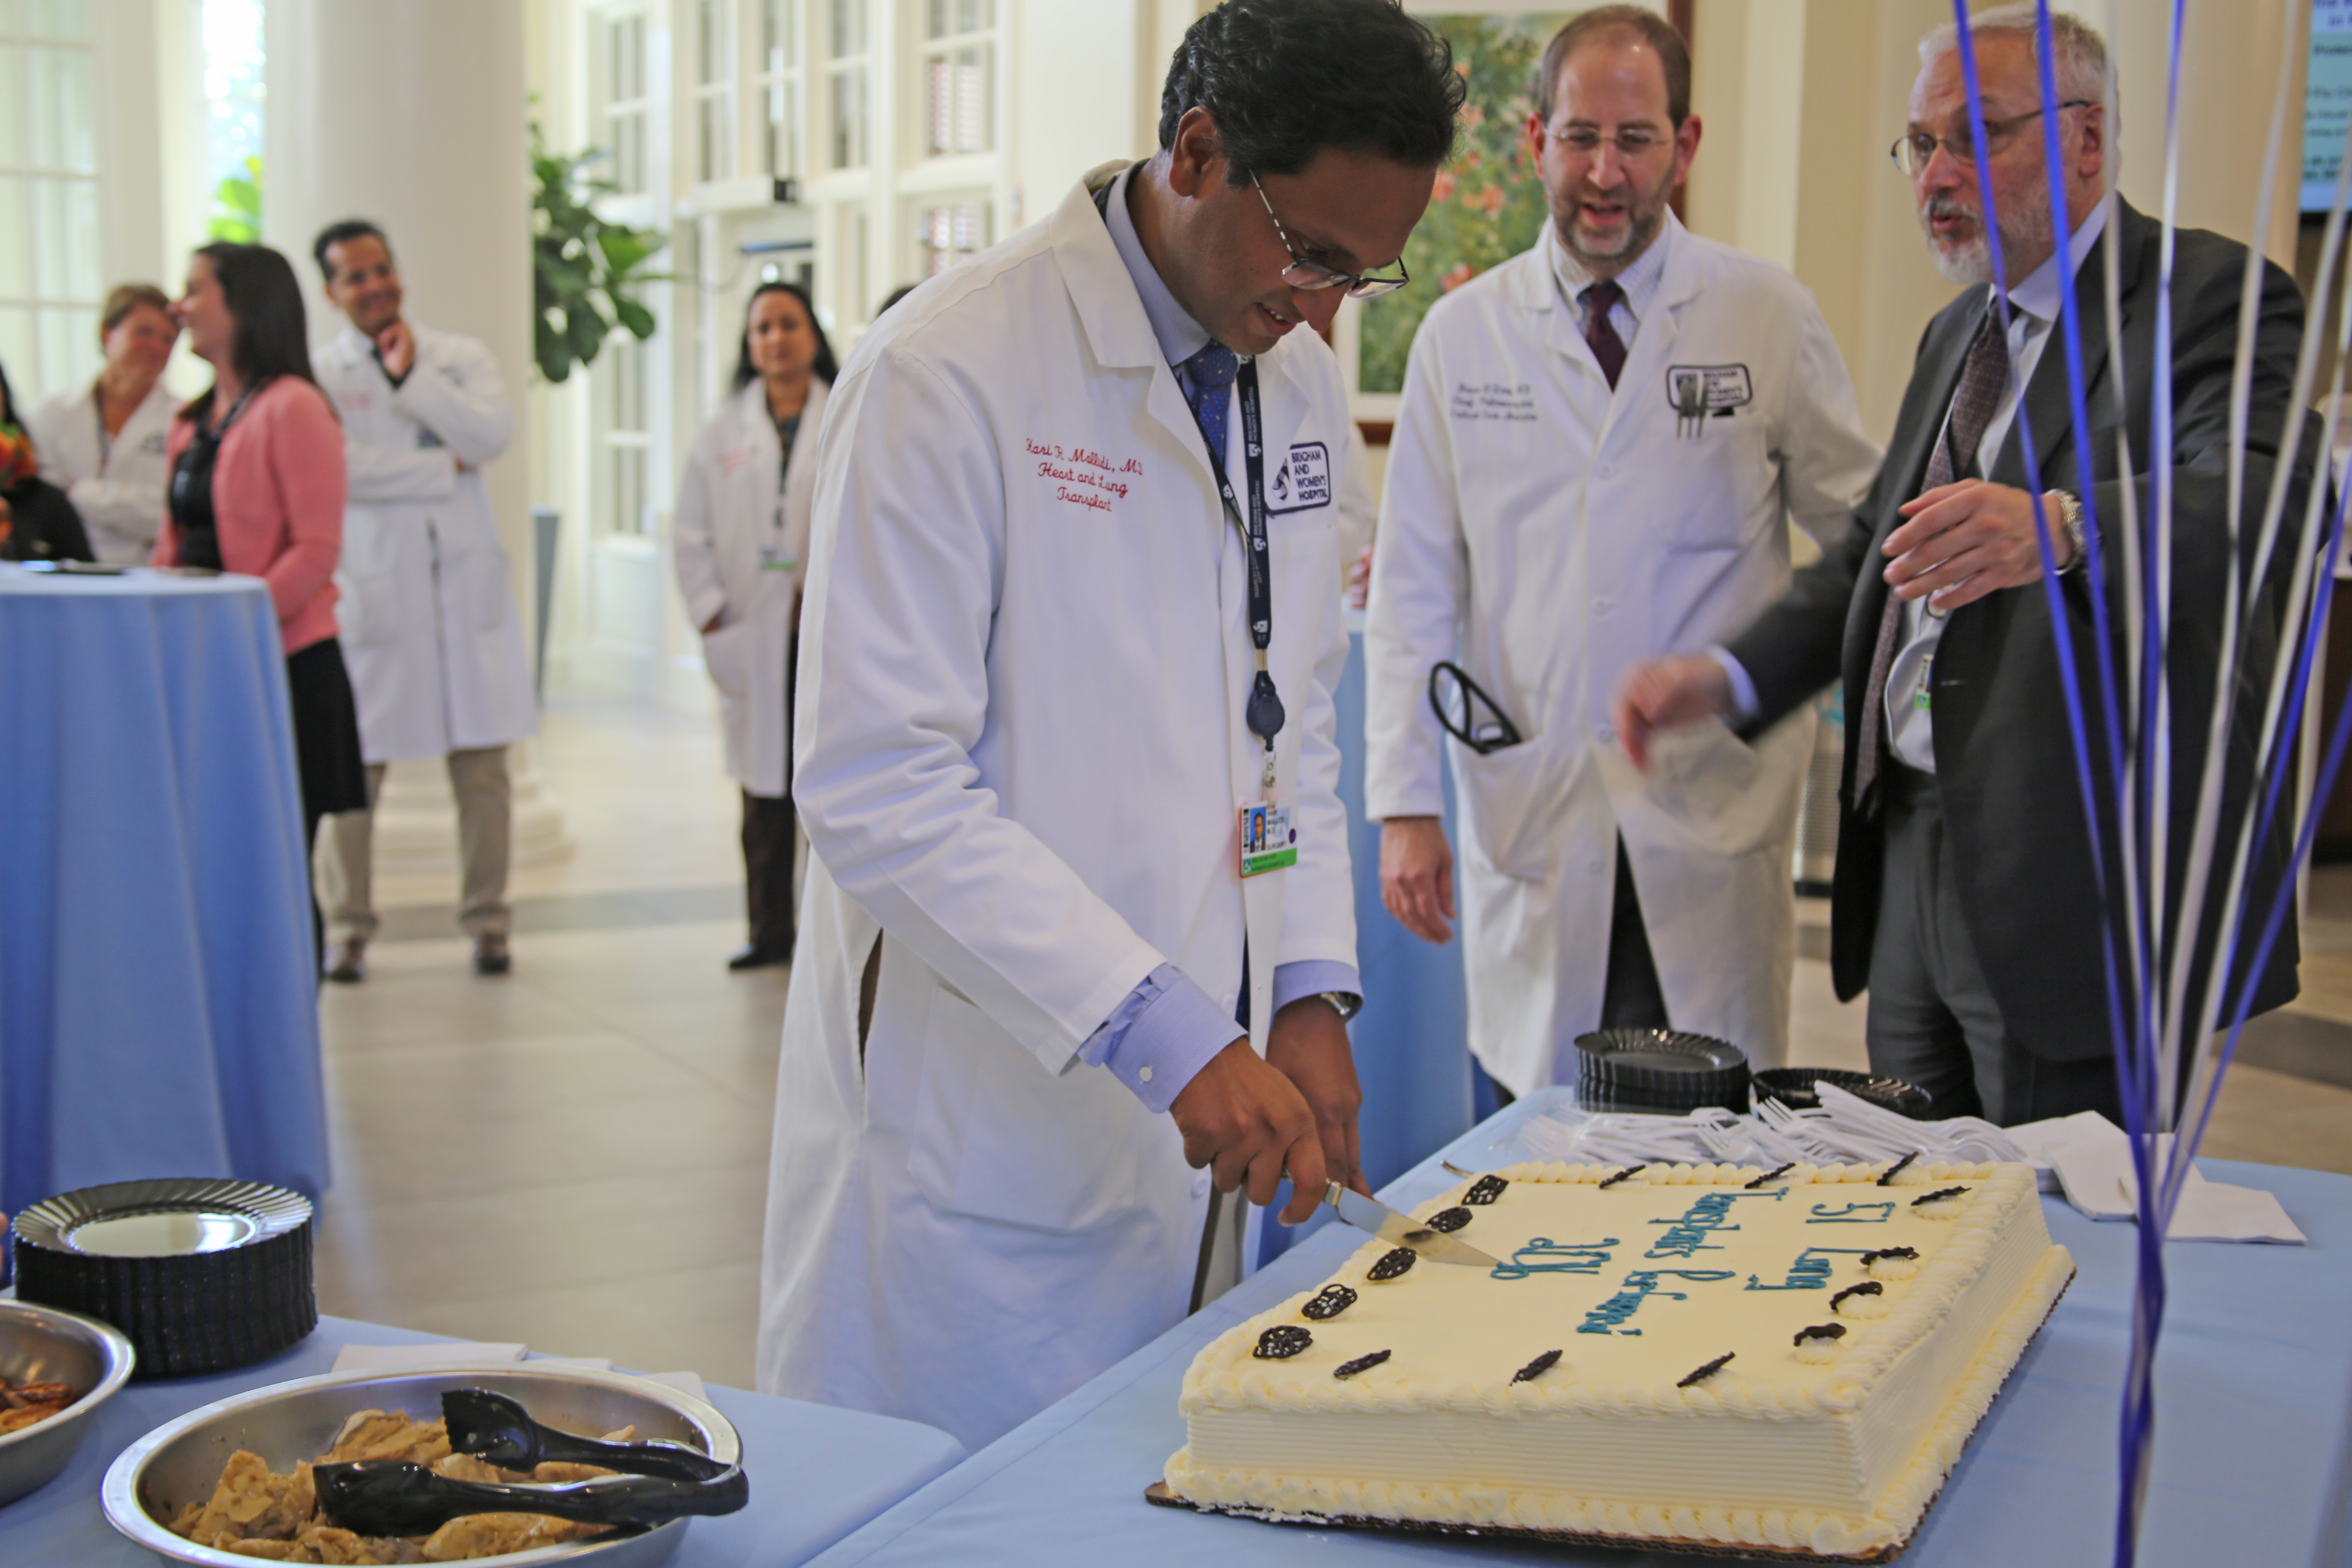 From left: Hari Mallidi cuts a cake celebrating a lung transplant milestone at BWH with Lung Center colleagues Bruce Levy and Raphael Bueno.